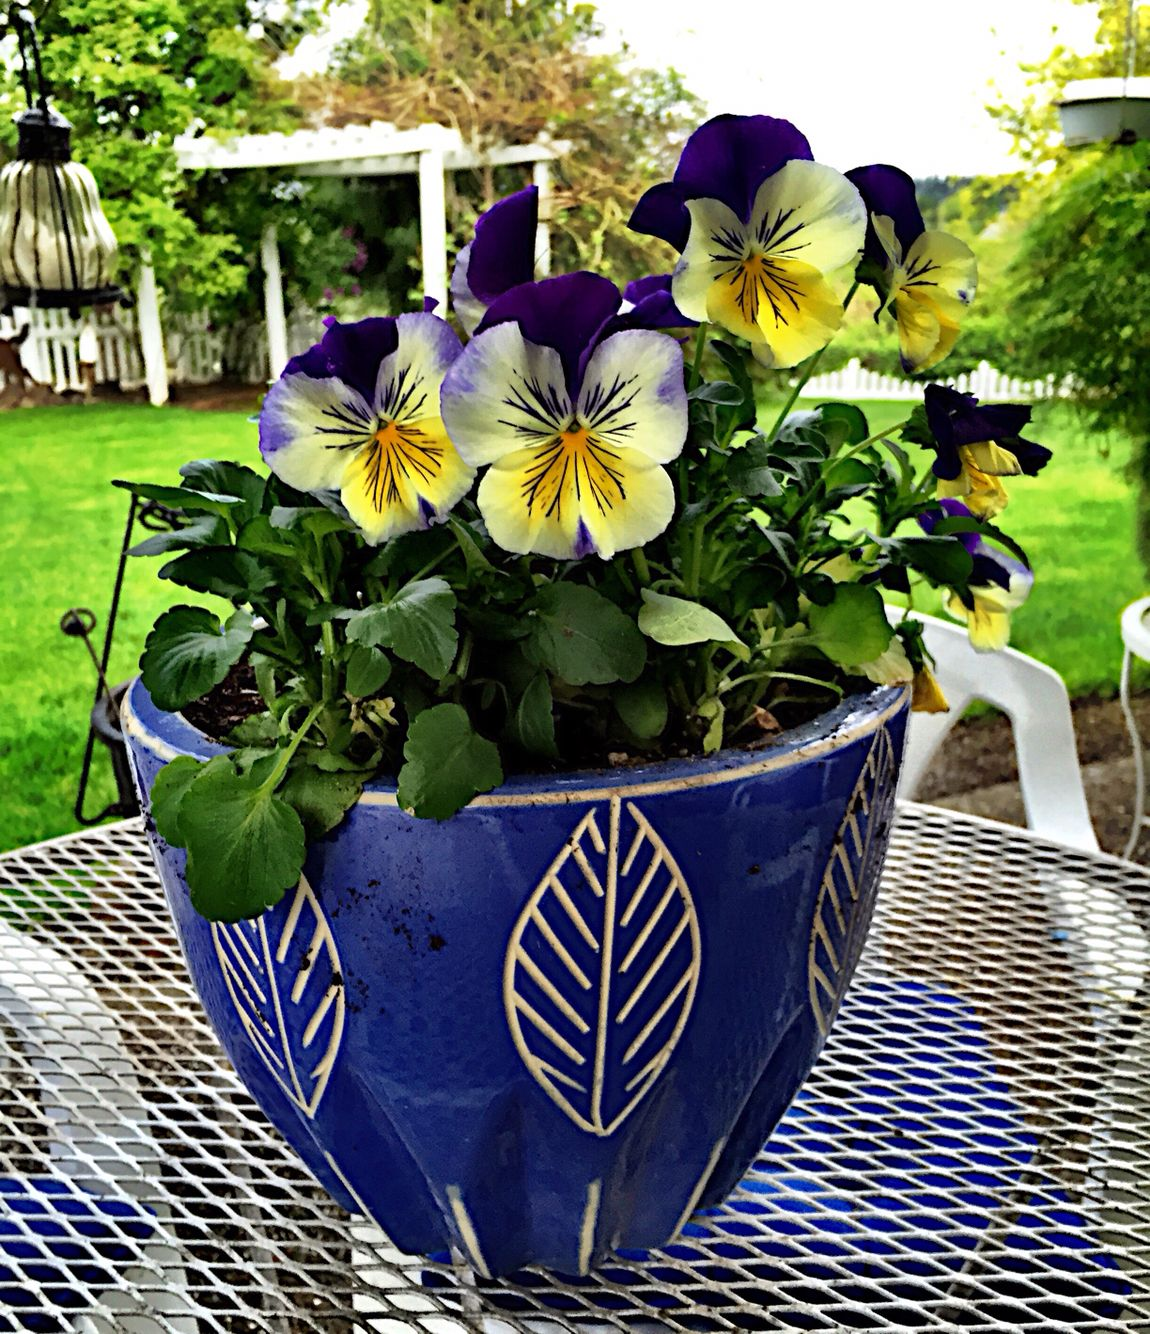 Lovely pansies at Blue Pansy Cottage